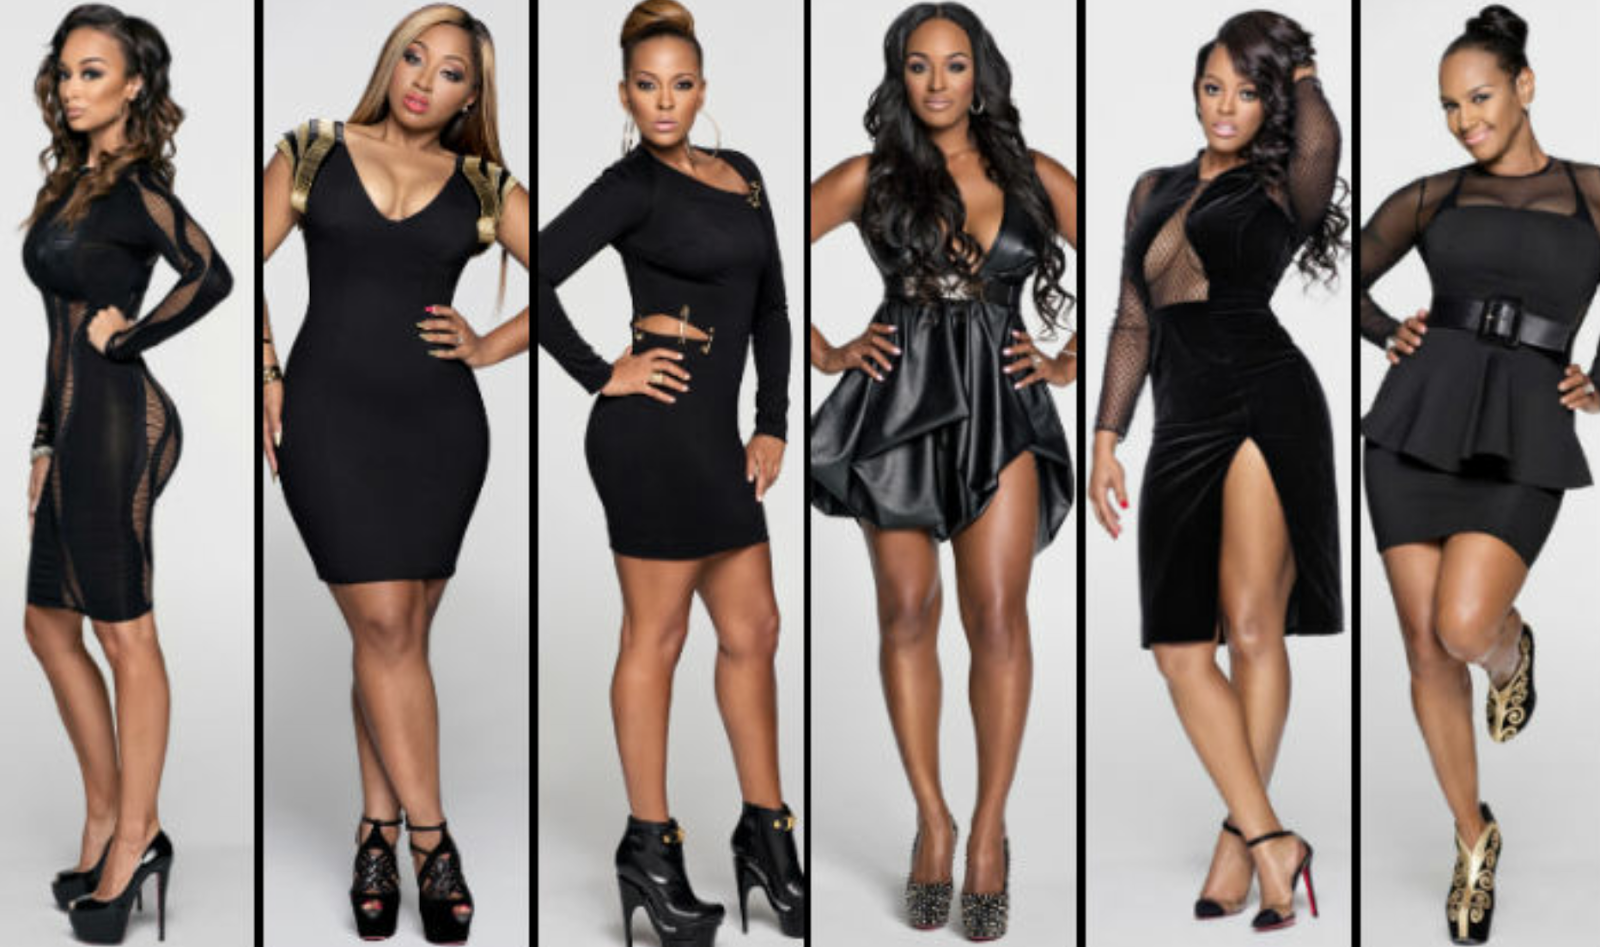 Basketball Wives La Season 4 Episode 9 | Basketball Scores